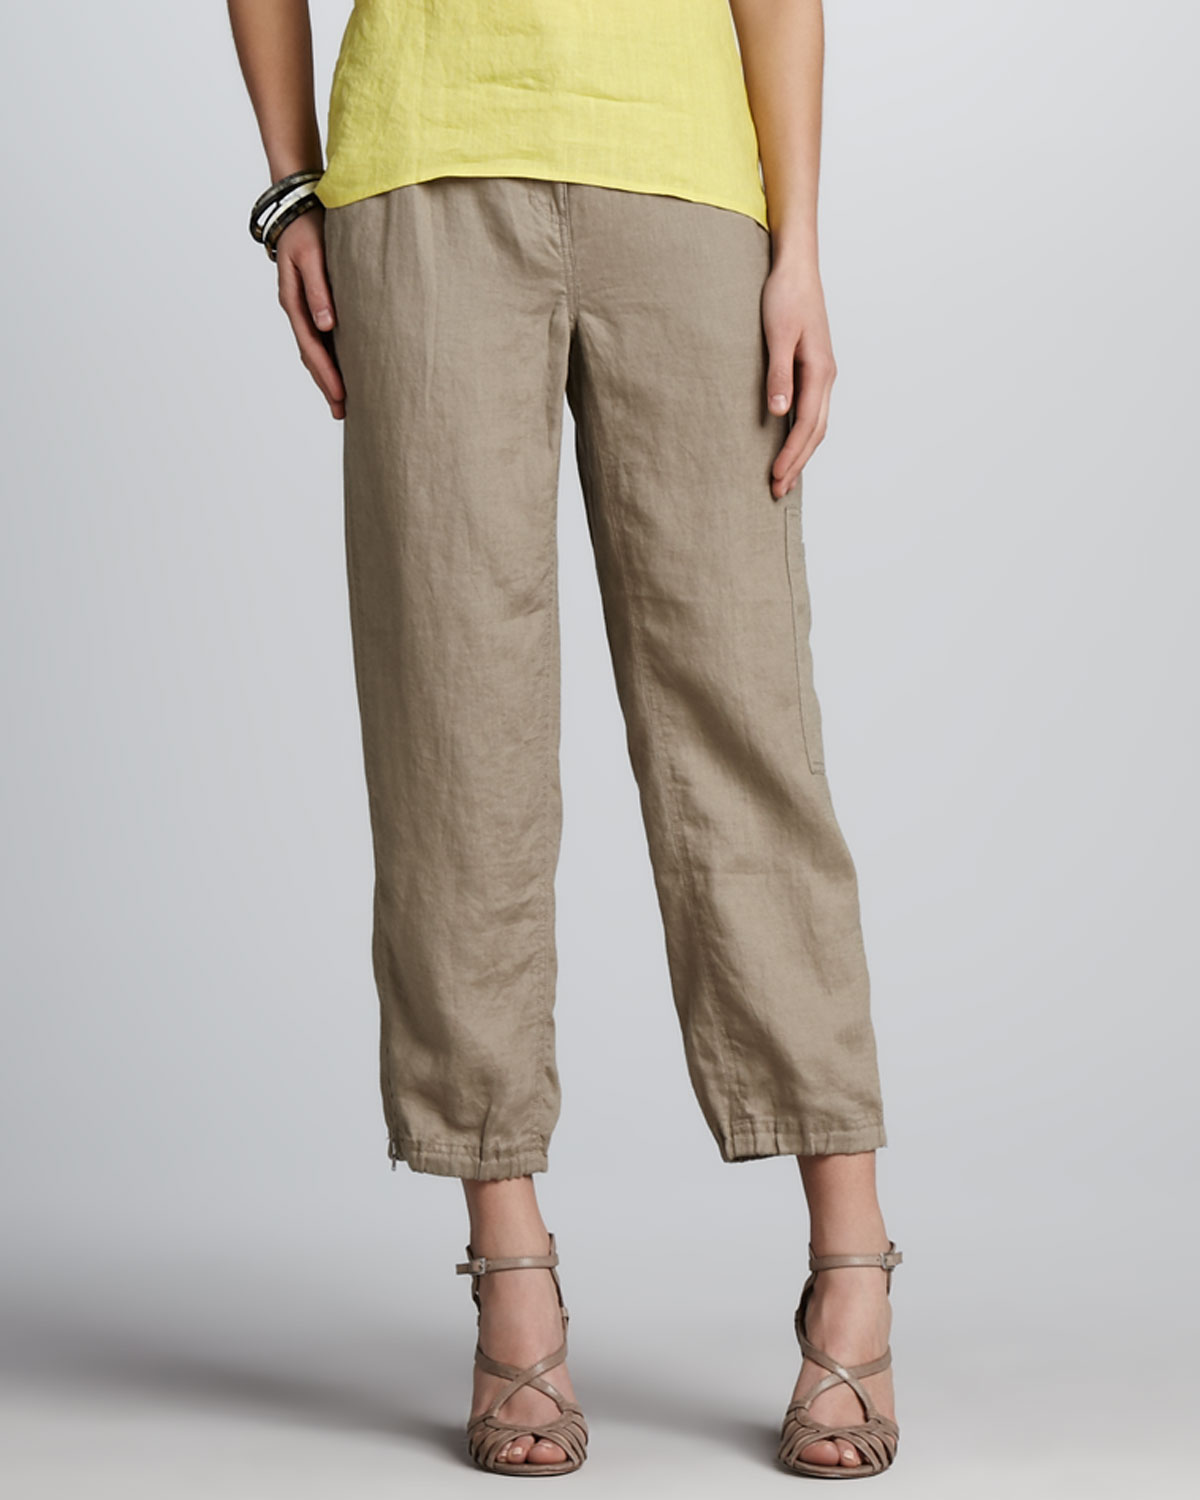 Eileen fisher Linen Ankle Cargo Pants Driftwood in Natural | Lyst